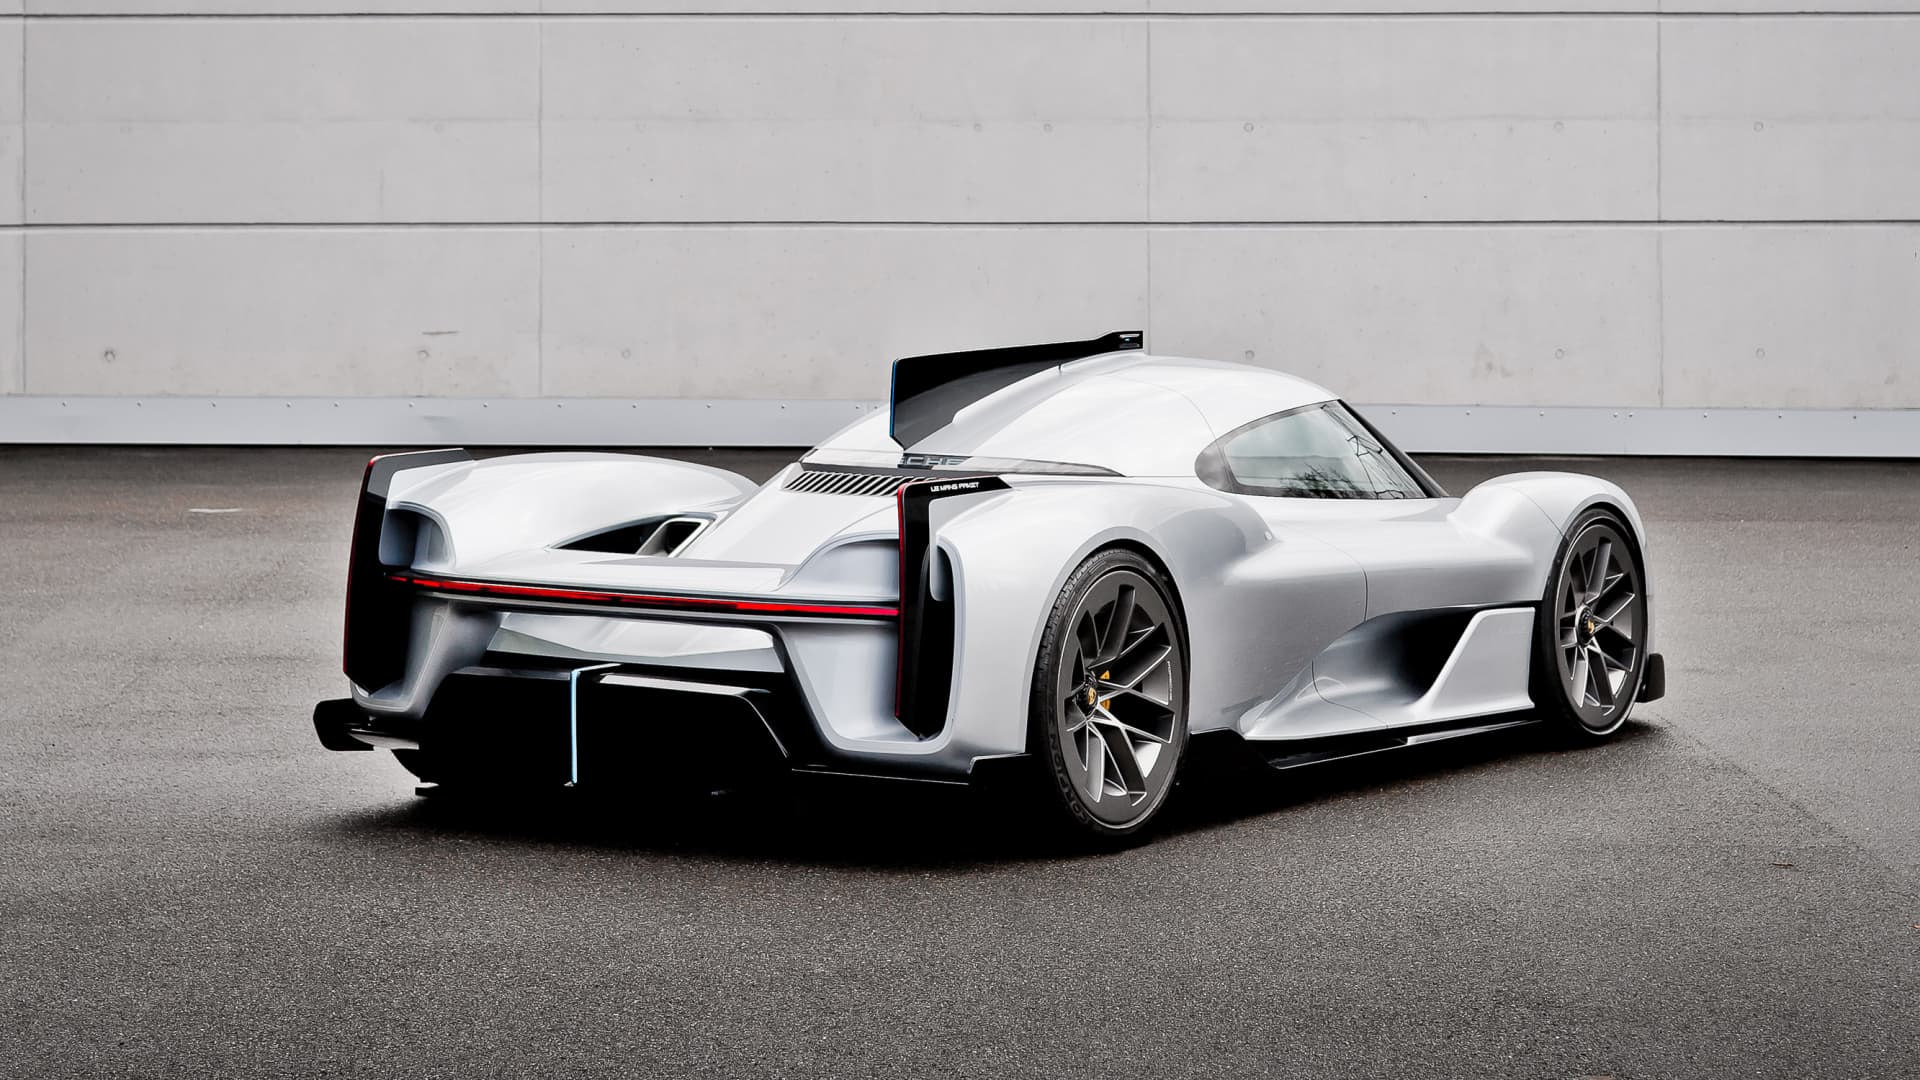 A rear view of the Porsche 919 Street concept car.